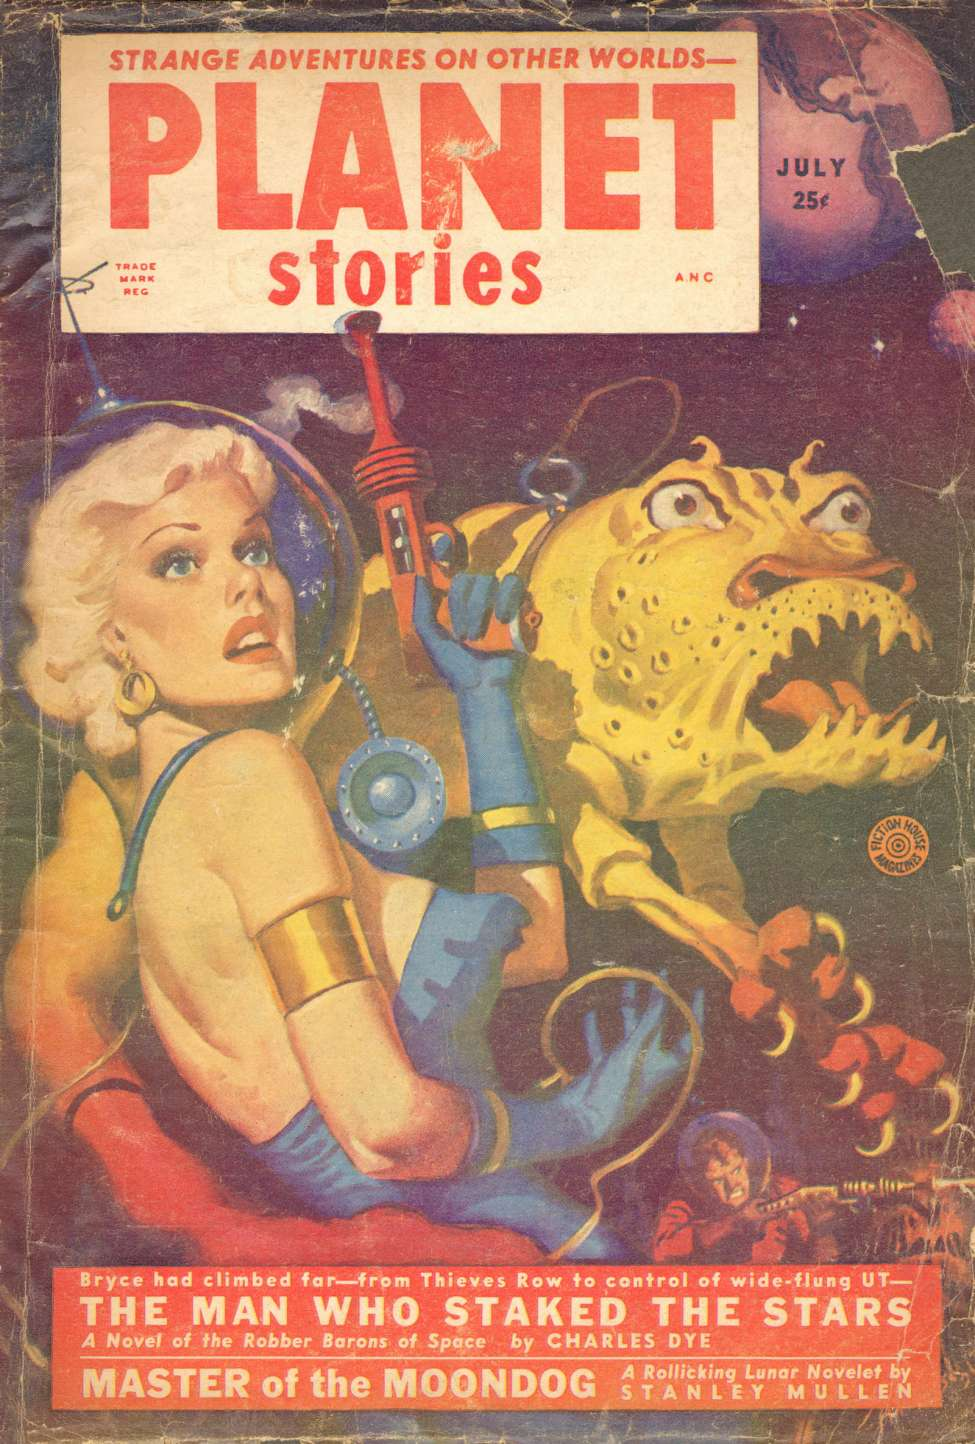 Comic Book Cover For Planet Stories v05 07 - The Man Who Staked the Stars - Charles Dye